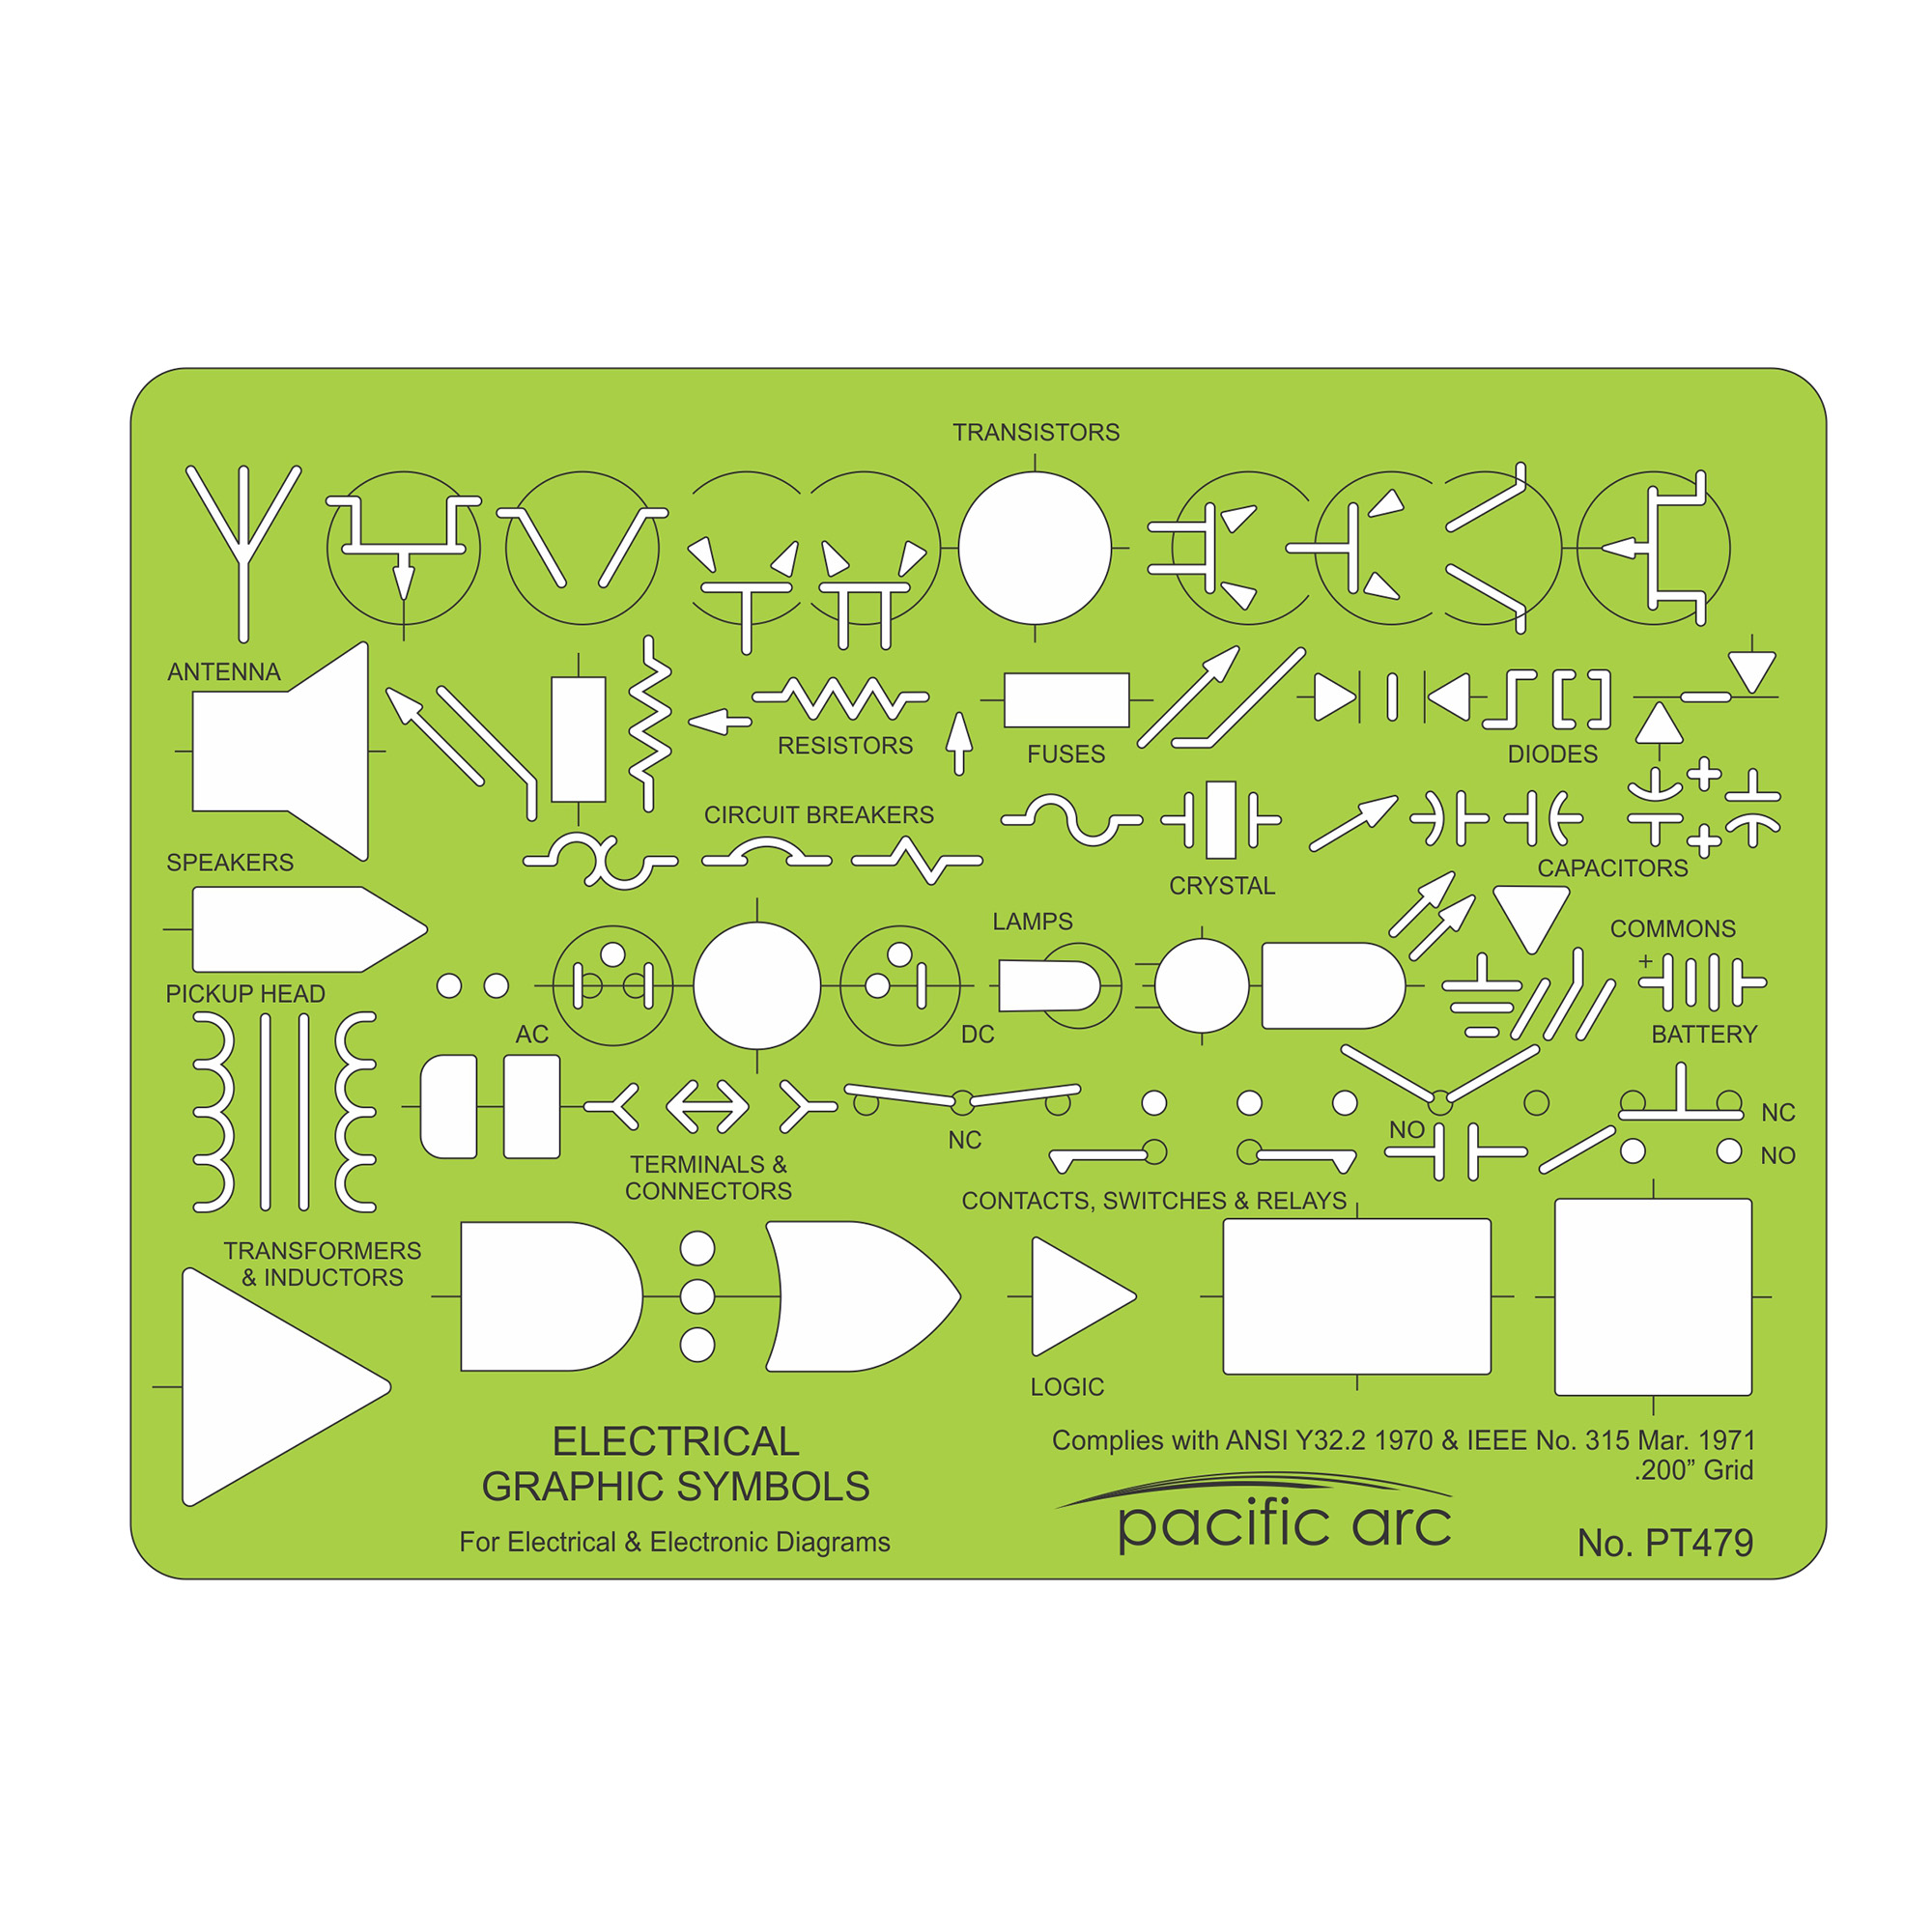 Electrical graphic symbols drafting design template by pacific arc